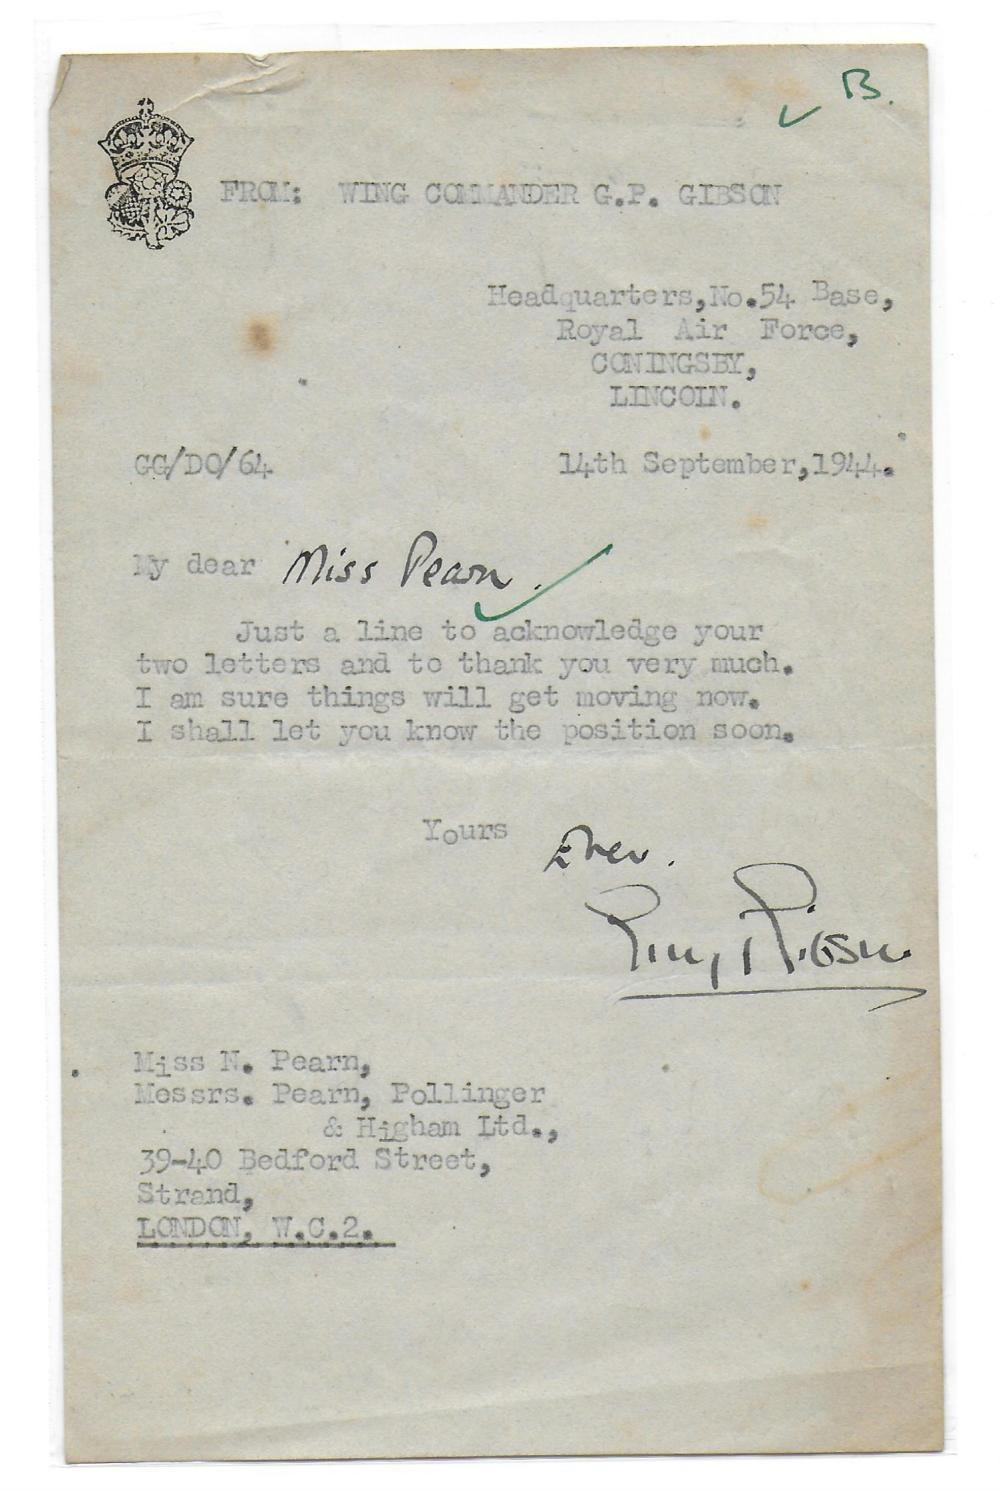 Wing Commander Guy Penrose Gibson VC, DSO, DFC, Legion of Merit. Signed typed letter dated 14th